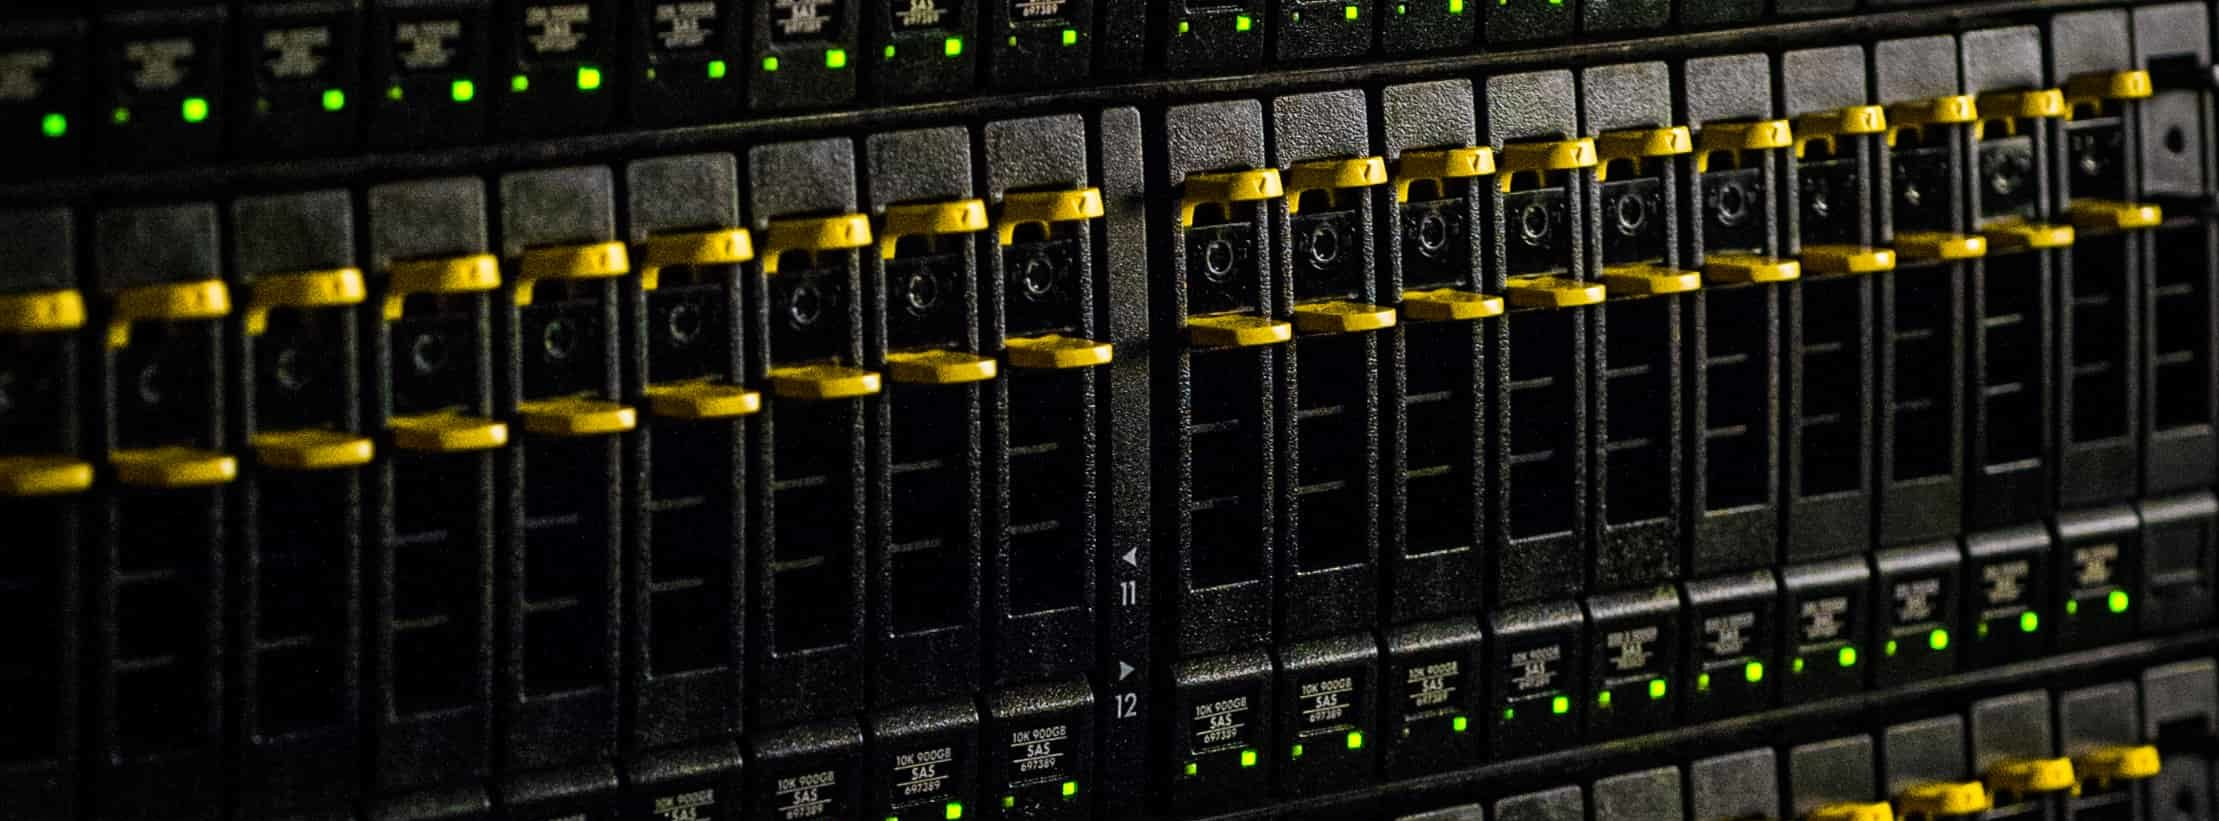 Close-up of a server rack